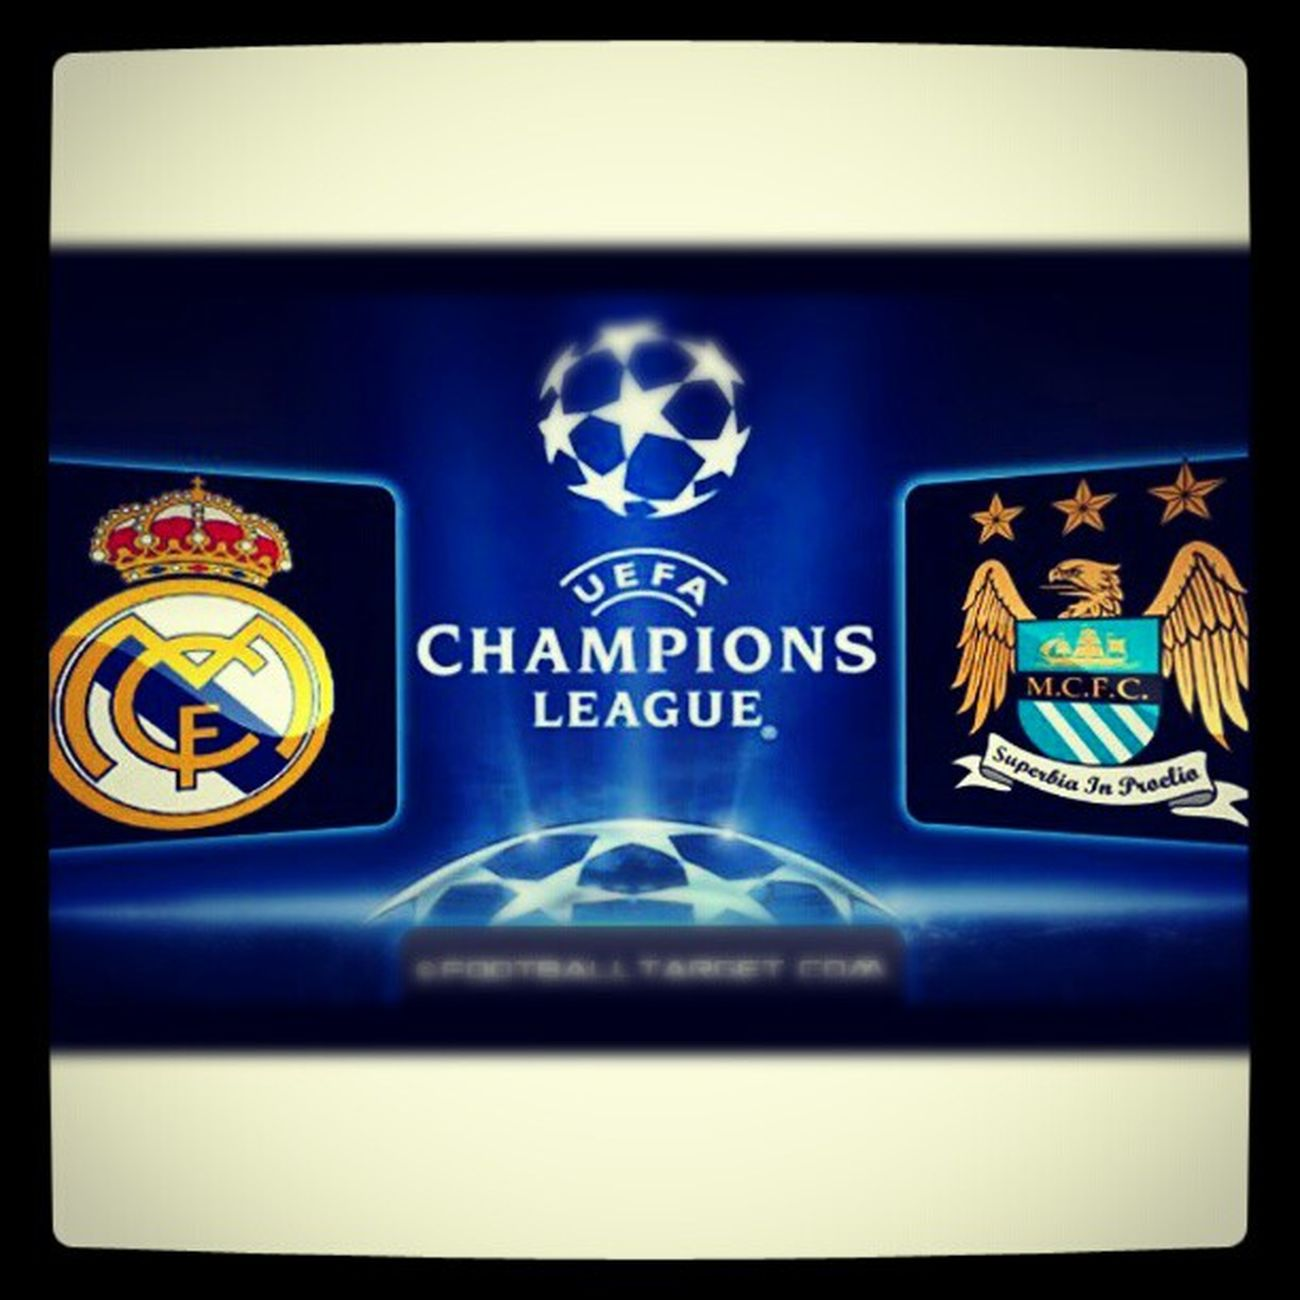 ¡Real Madrid VS Manchester City! Let's go city!!! ManchesterCity KunAguero Fuckmadrid Uefachampionsleague